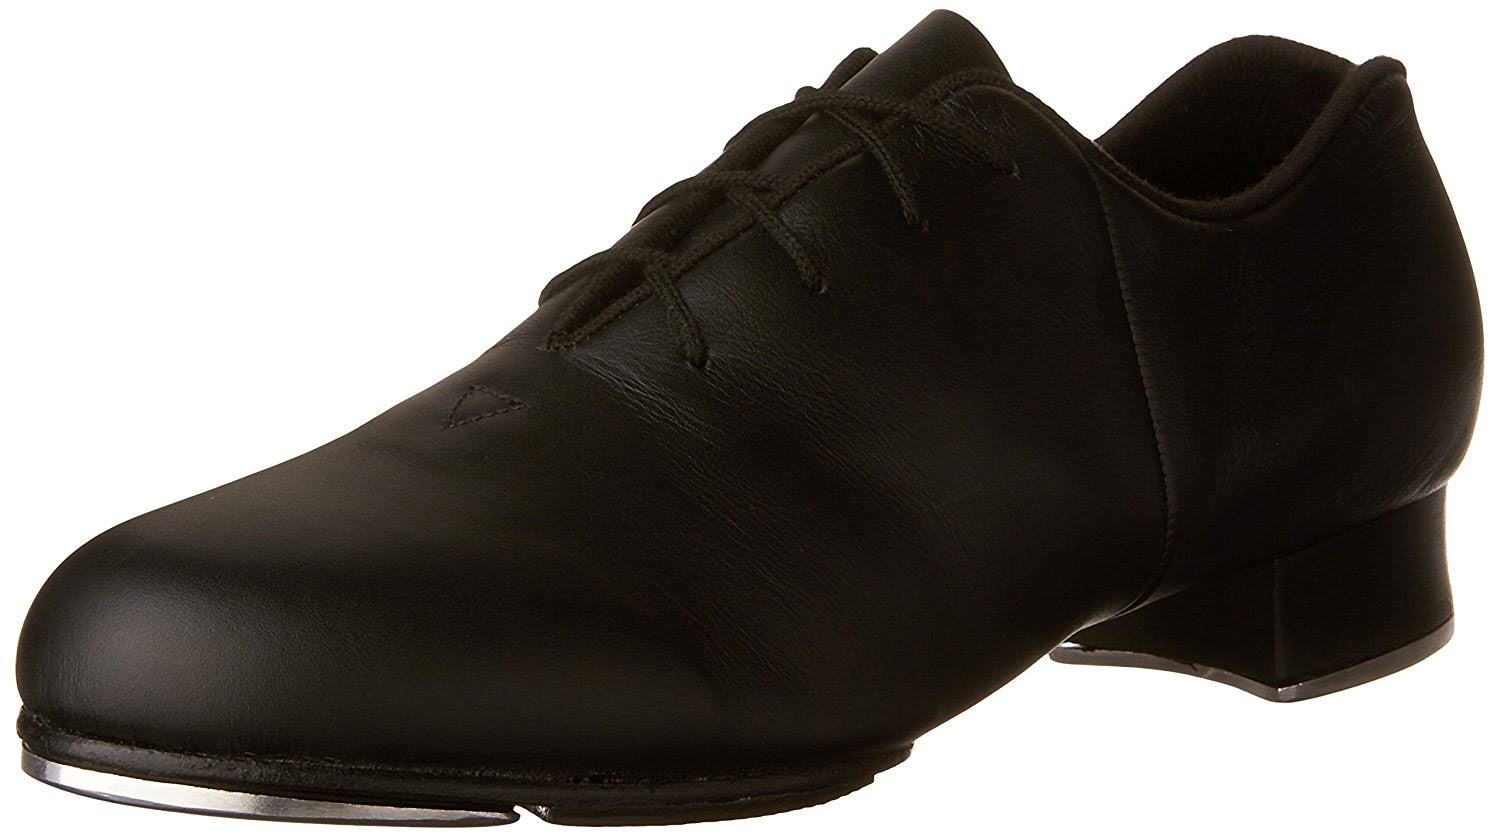 Bloch S0388 Womens Tap Flex Leather Split Sole Tap Shoe - US8.5